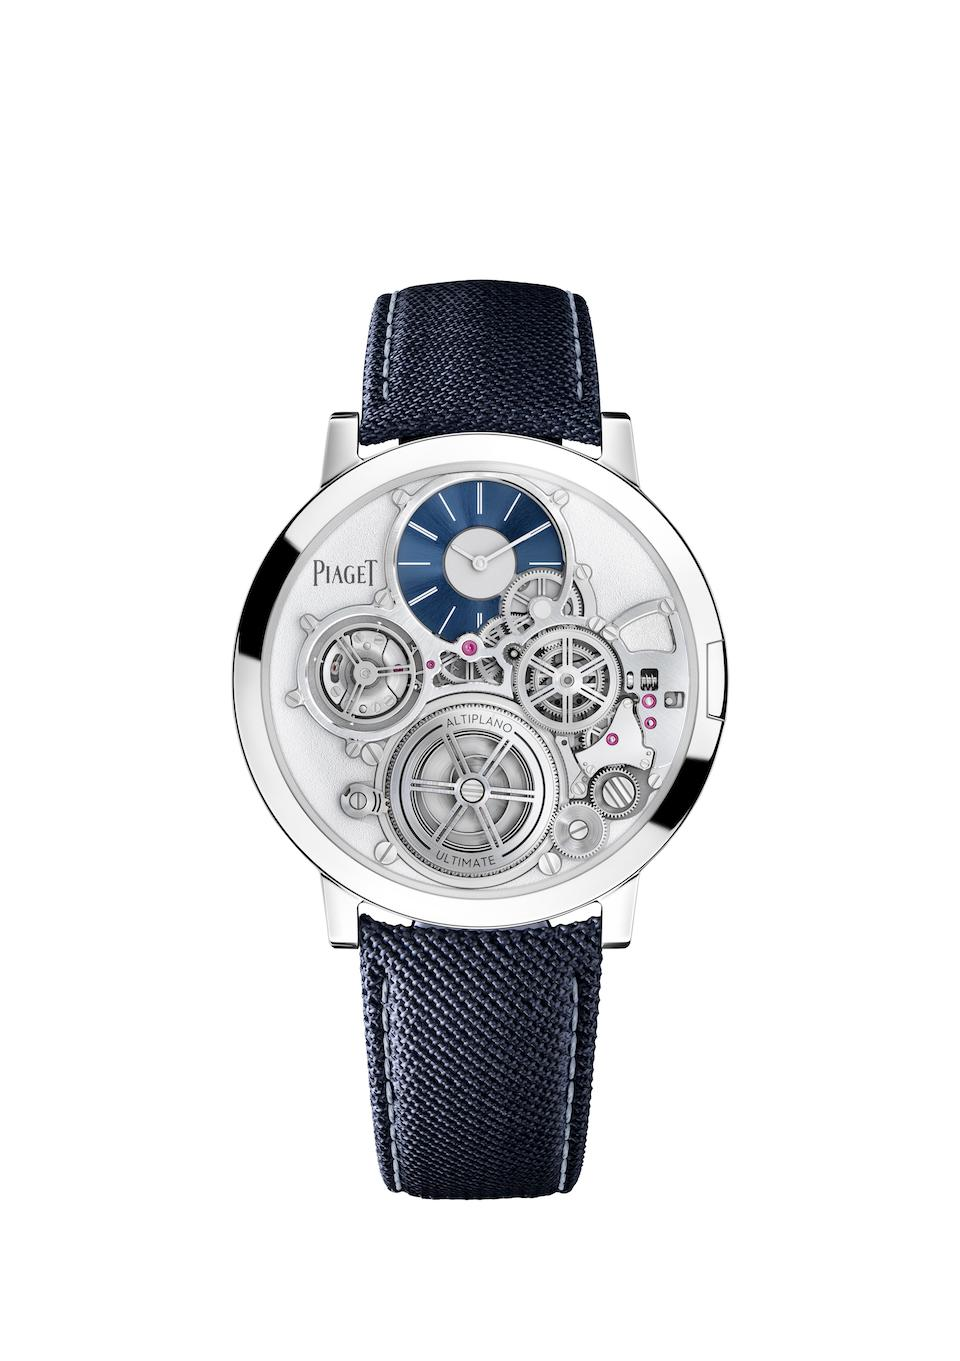 PiagetAltiplano Ultimate Concept watch.